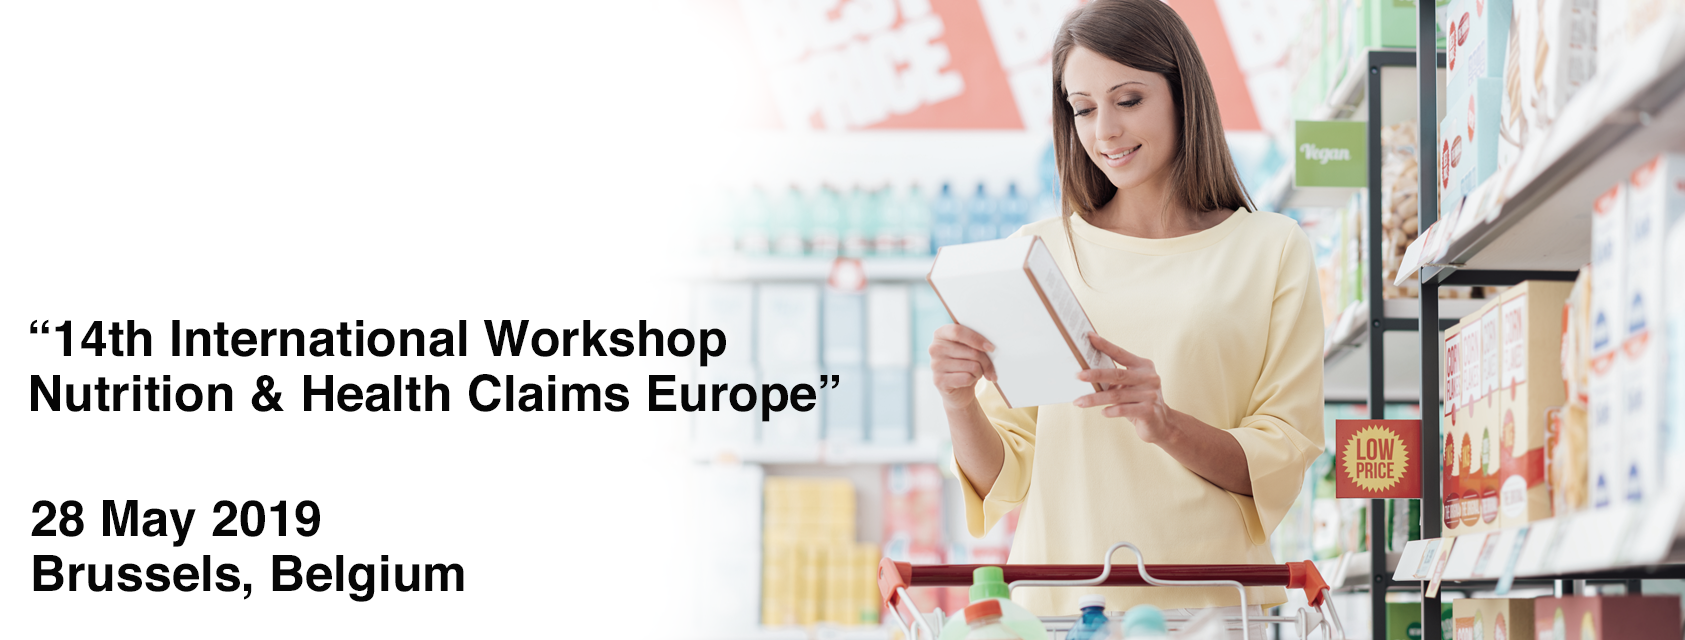 We are attending the 14th International Workshop on Nutrition & Health Claims Europe